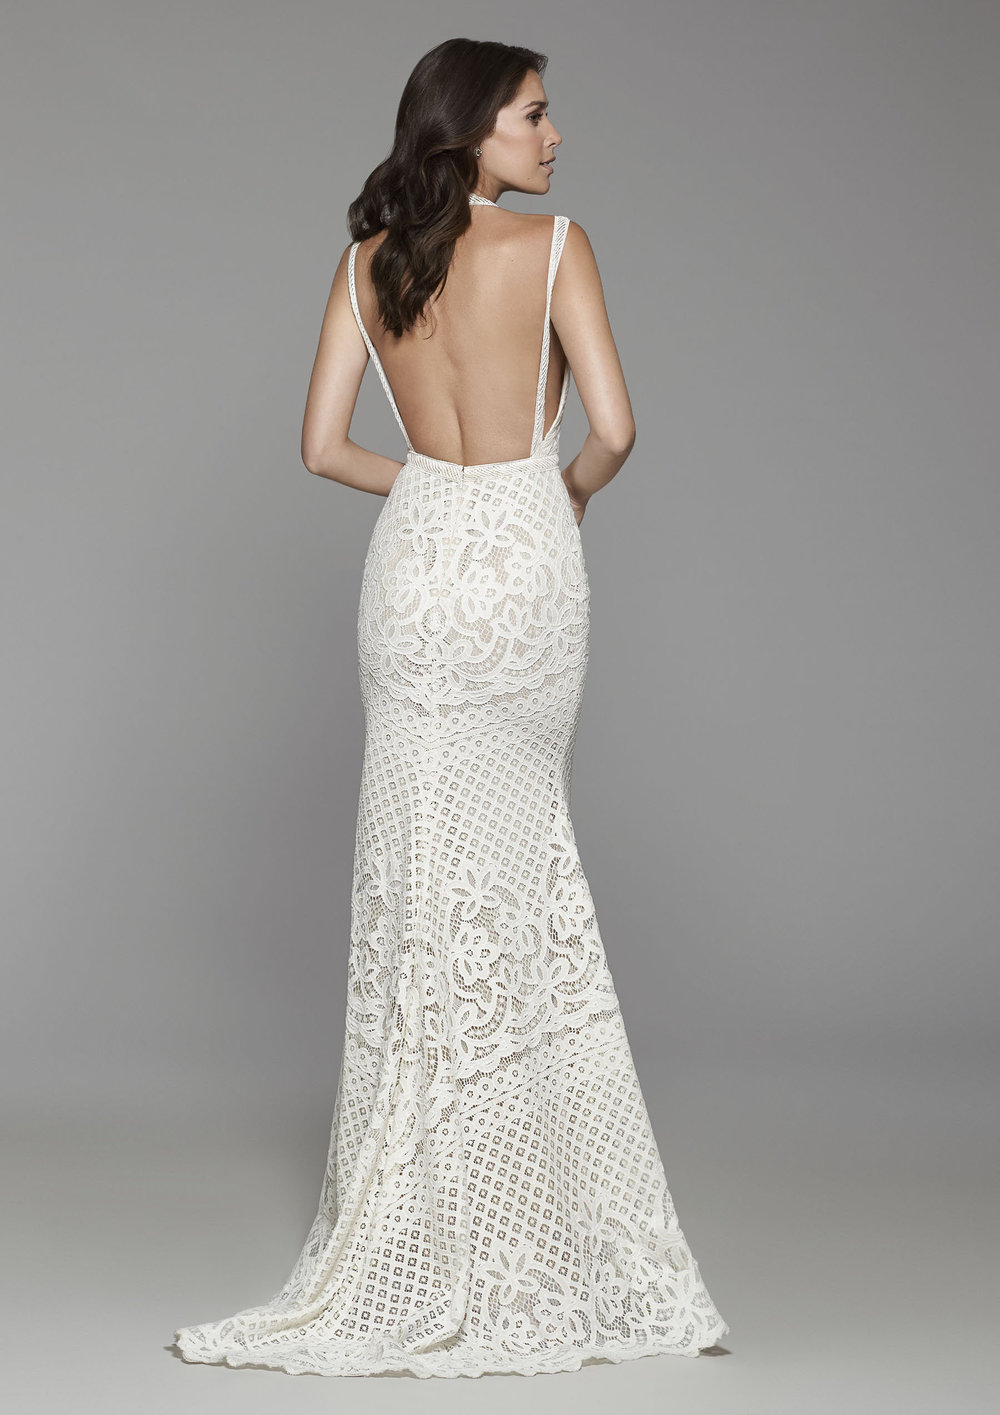 Available at Bride To Be Couture - Inventory # 01925